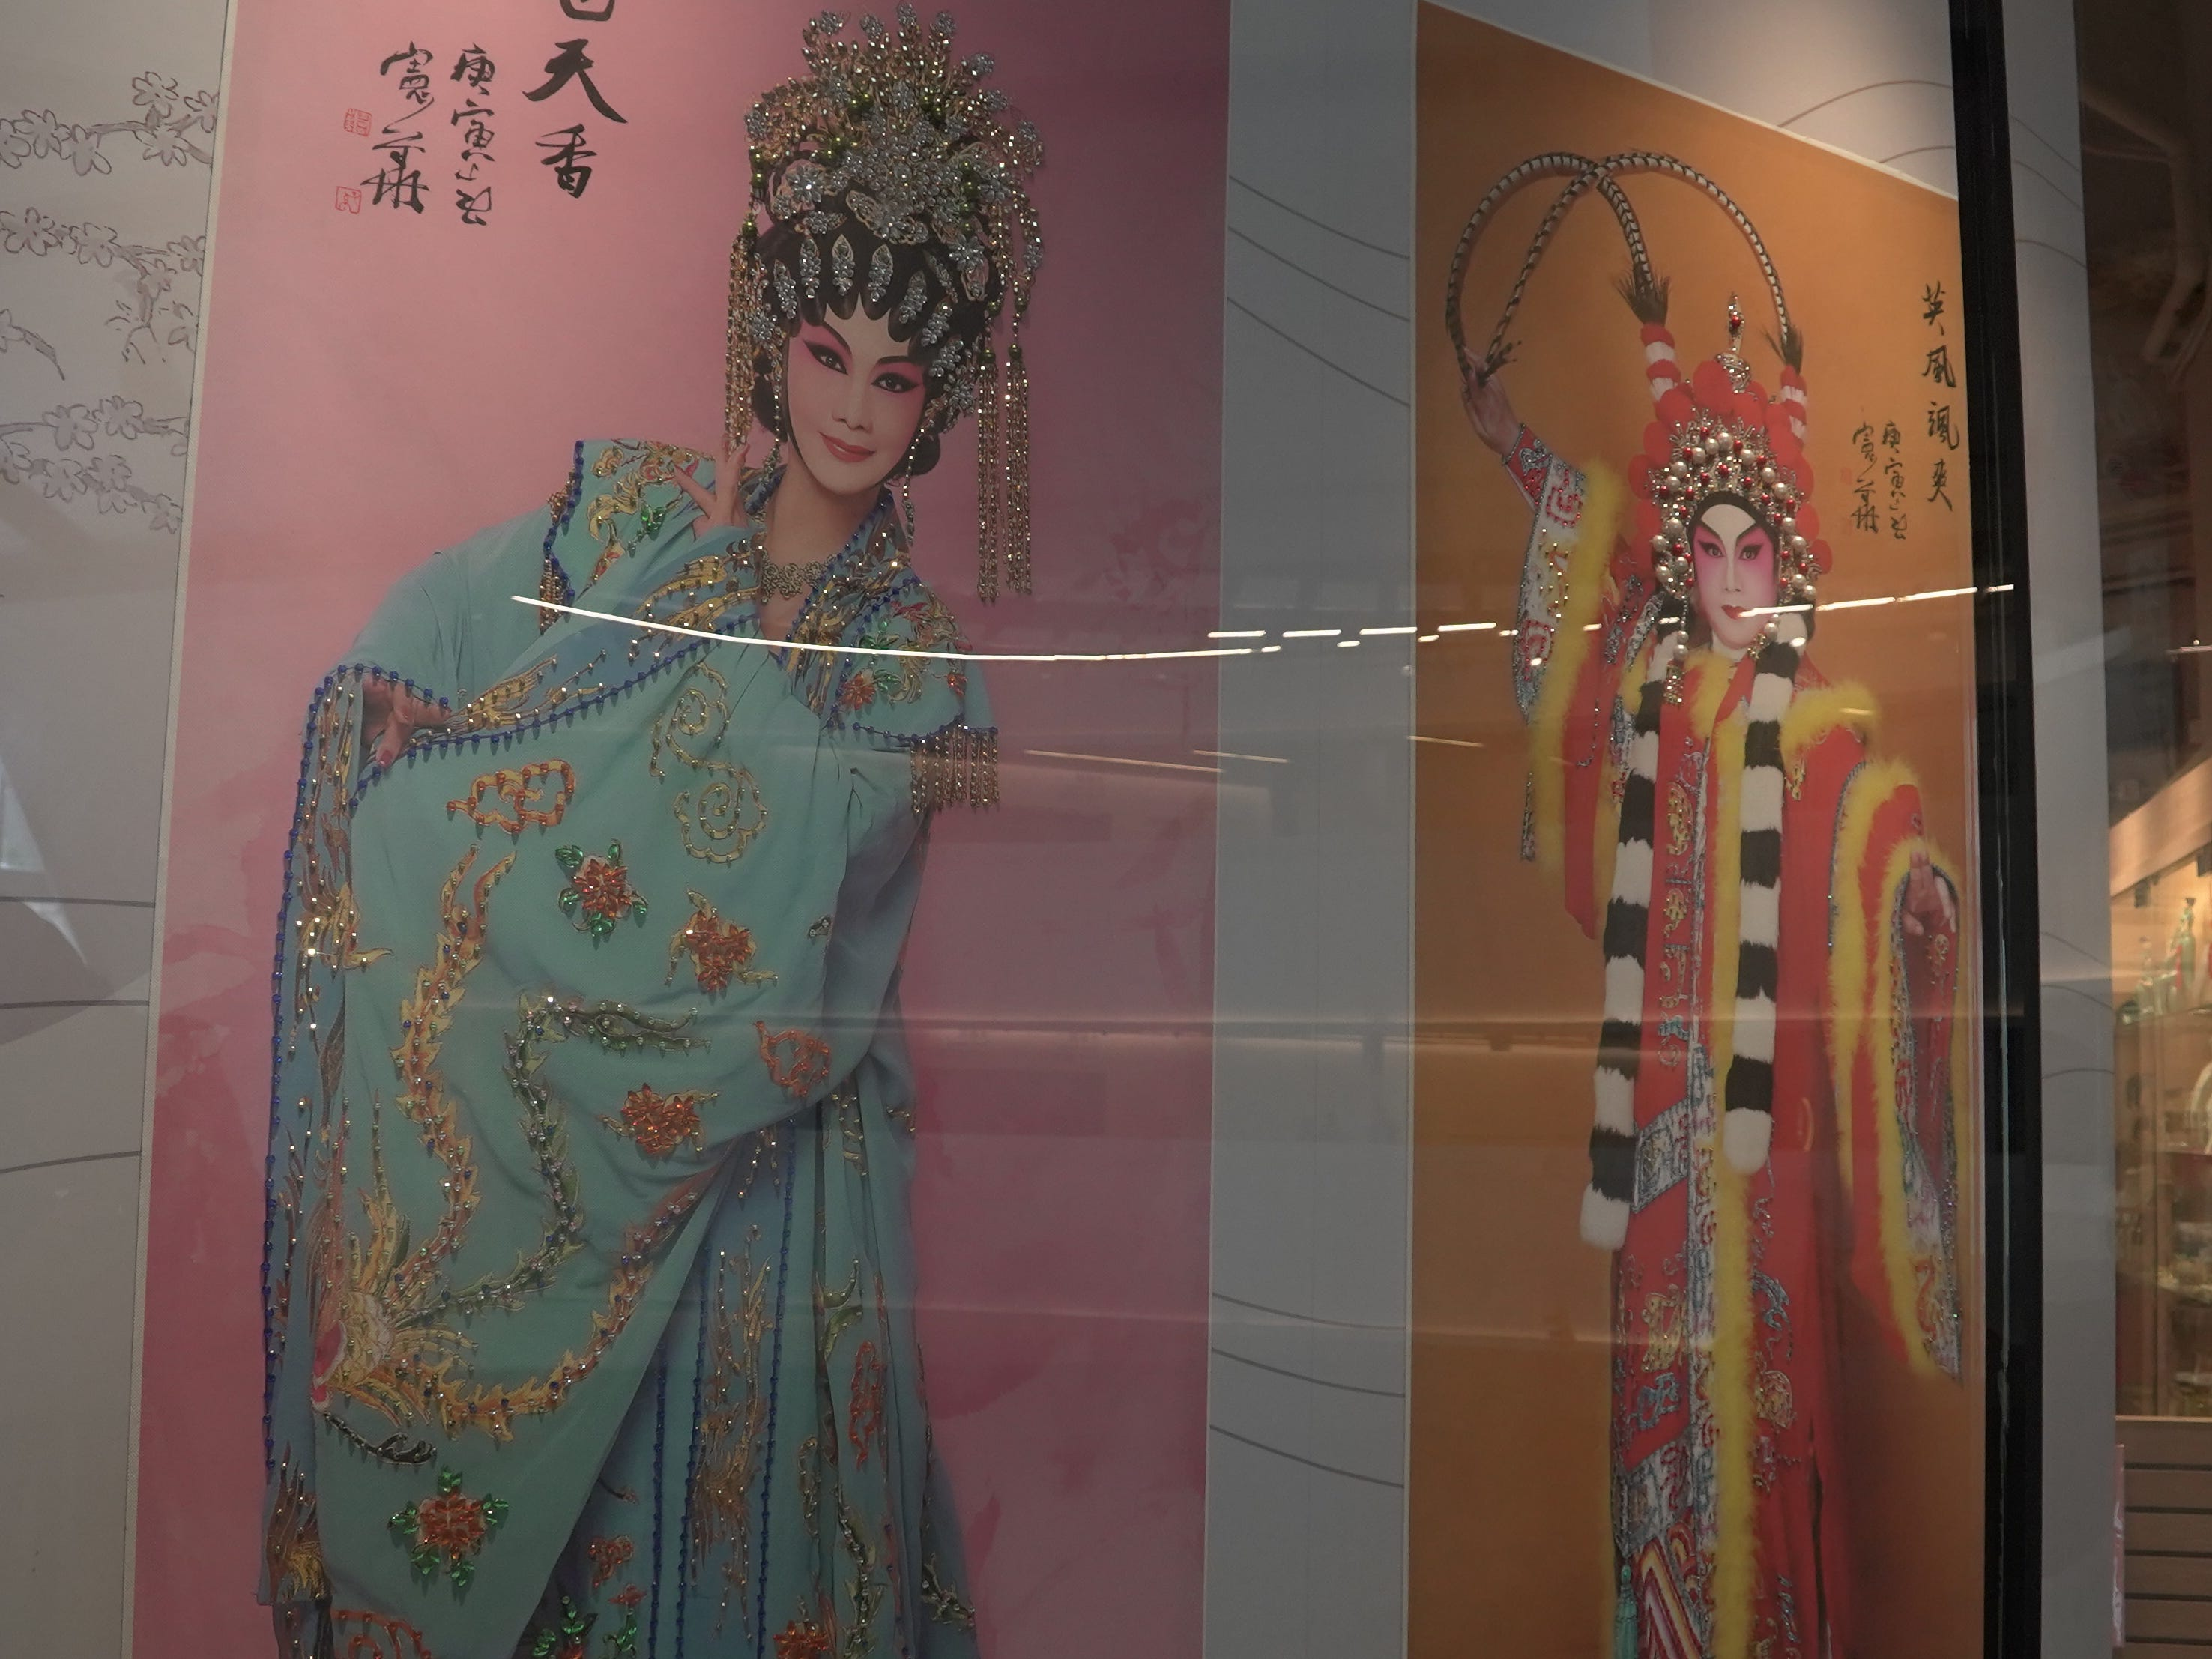 Traditional Chinese opera costumes inside the Xiqu Centre.